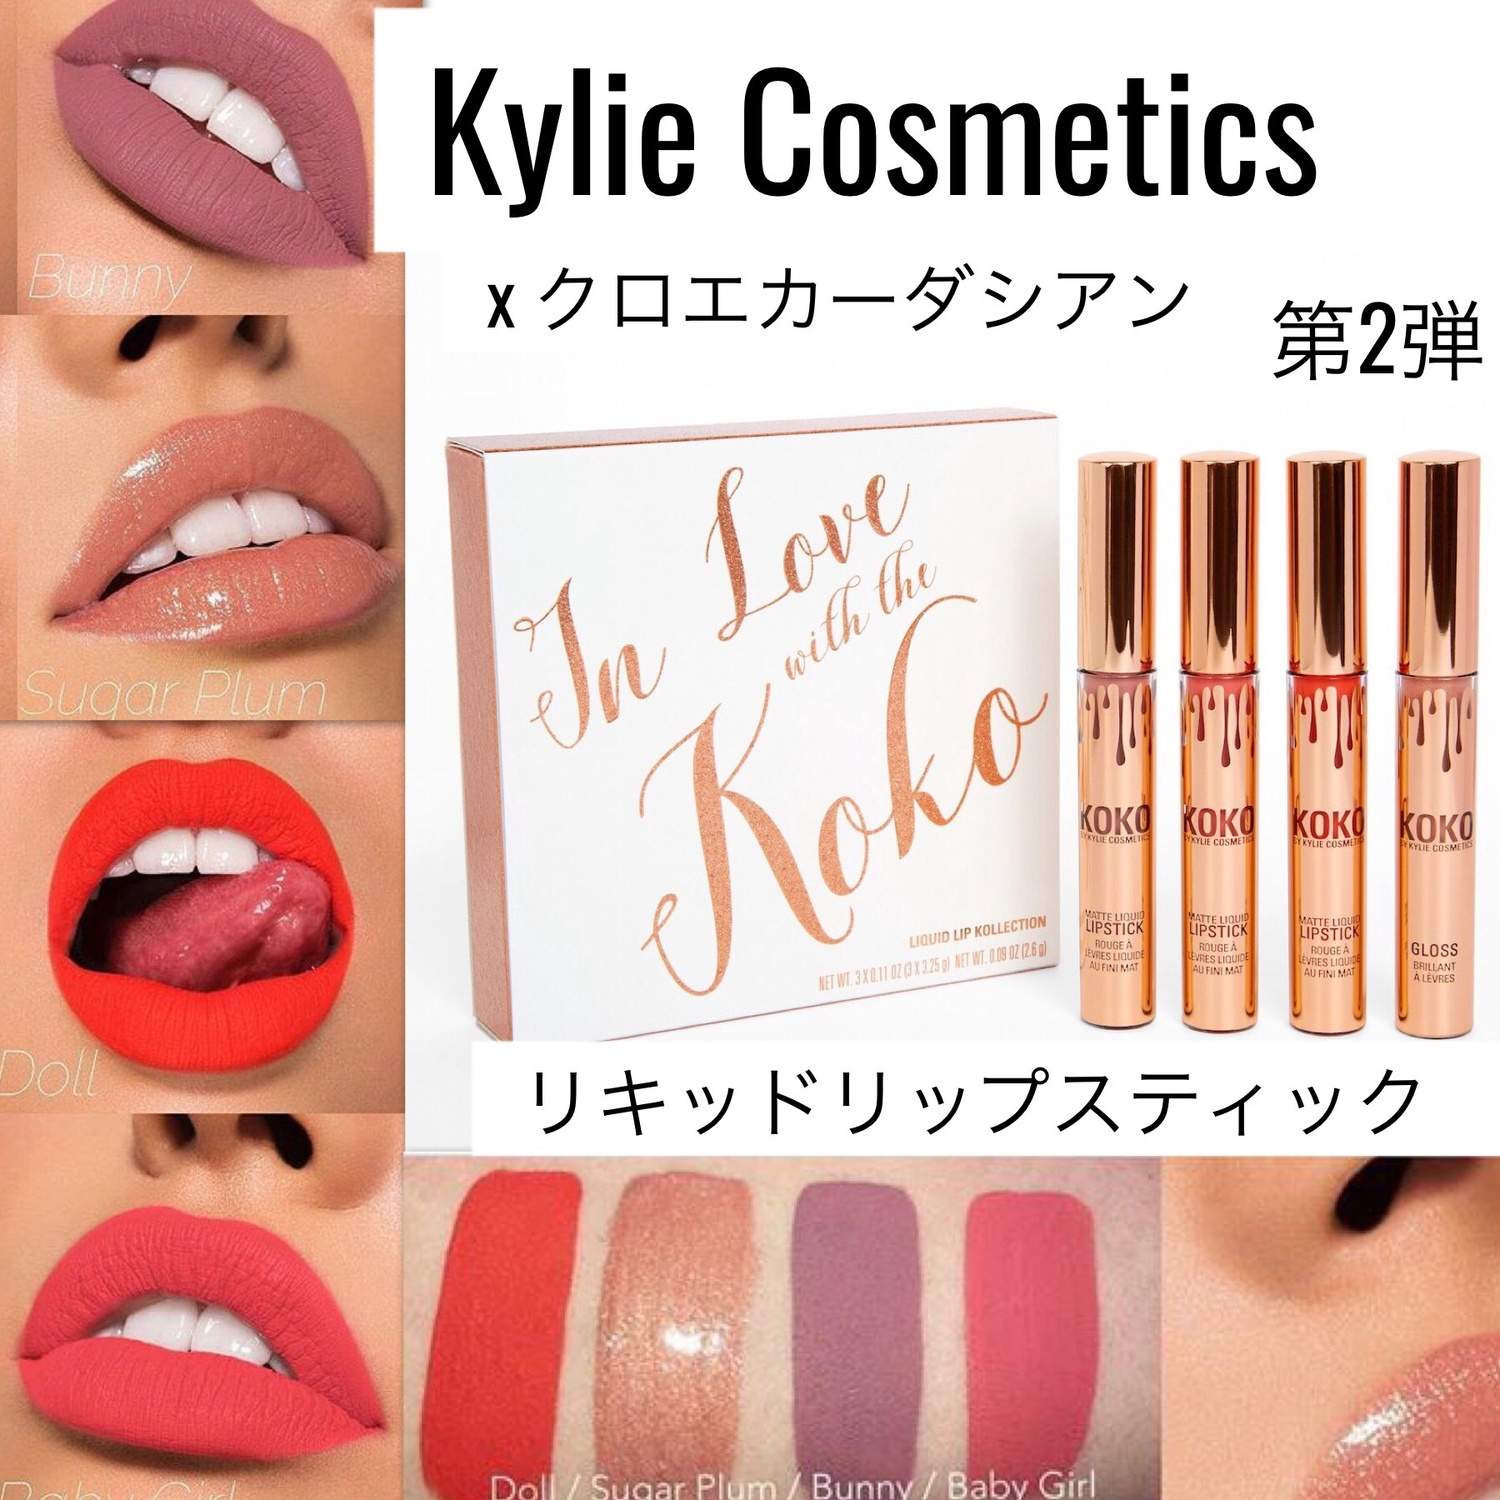 限定☆Kylie Cosmetics☆In Love With The Koko☆リキッドリップ